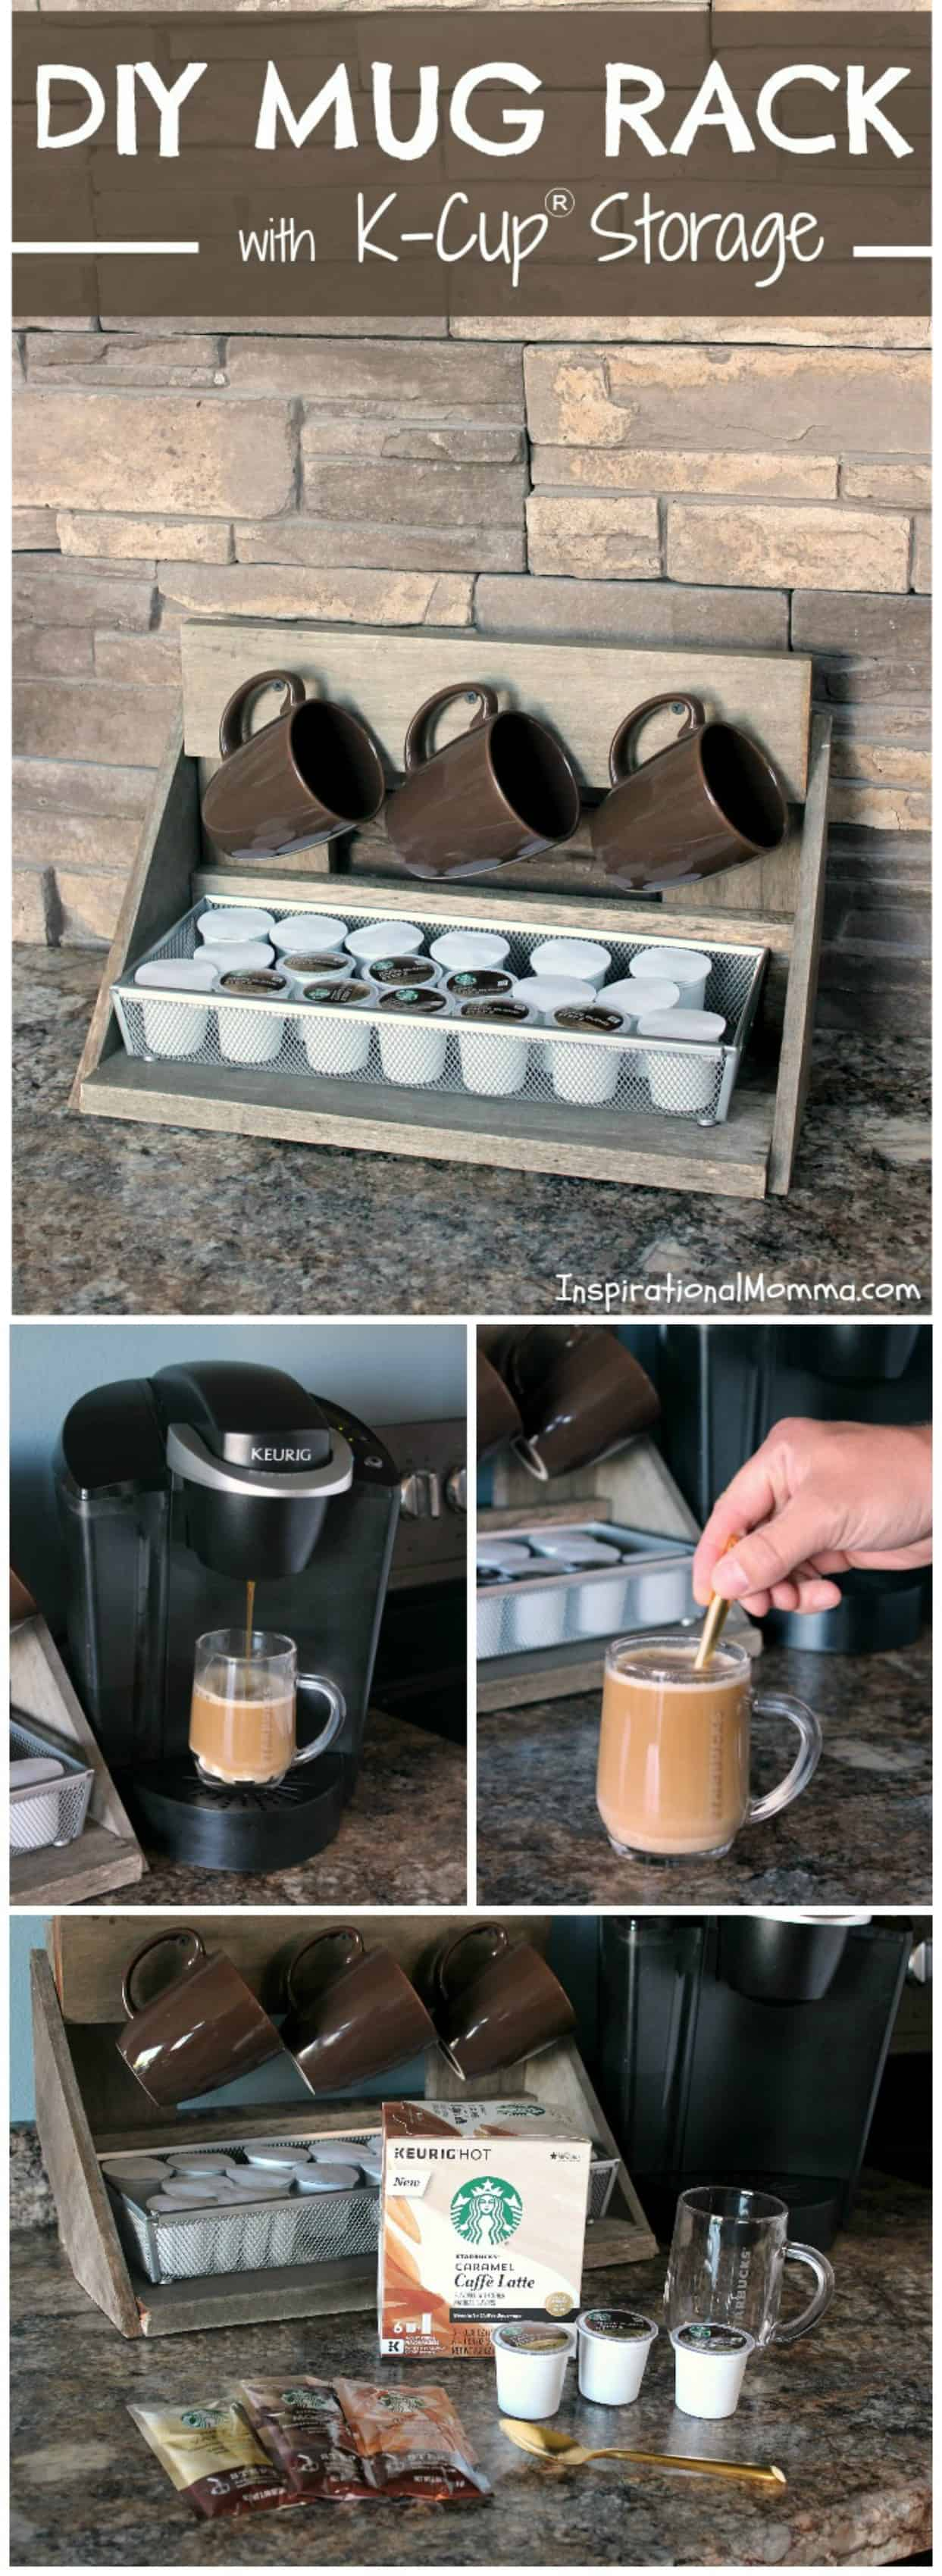 Make Your Own DIY Mug Rack With K Cup® Storage! A Beautiful Addition